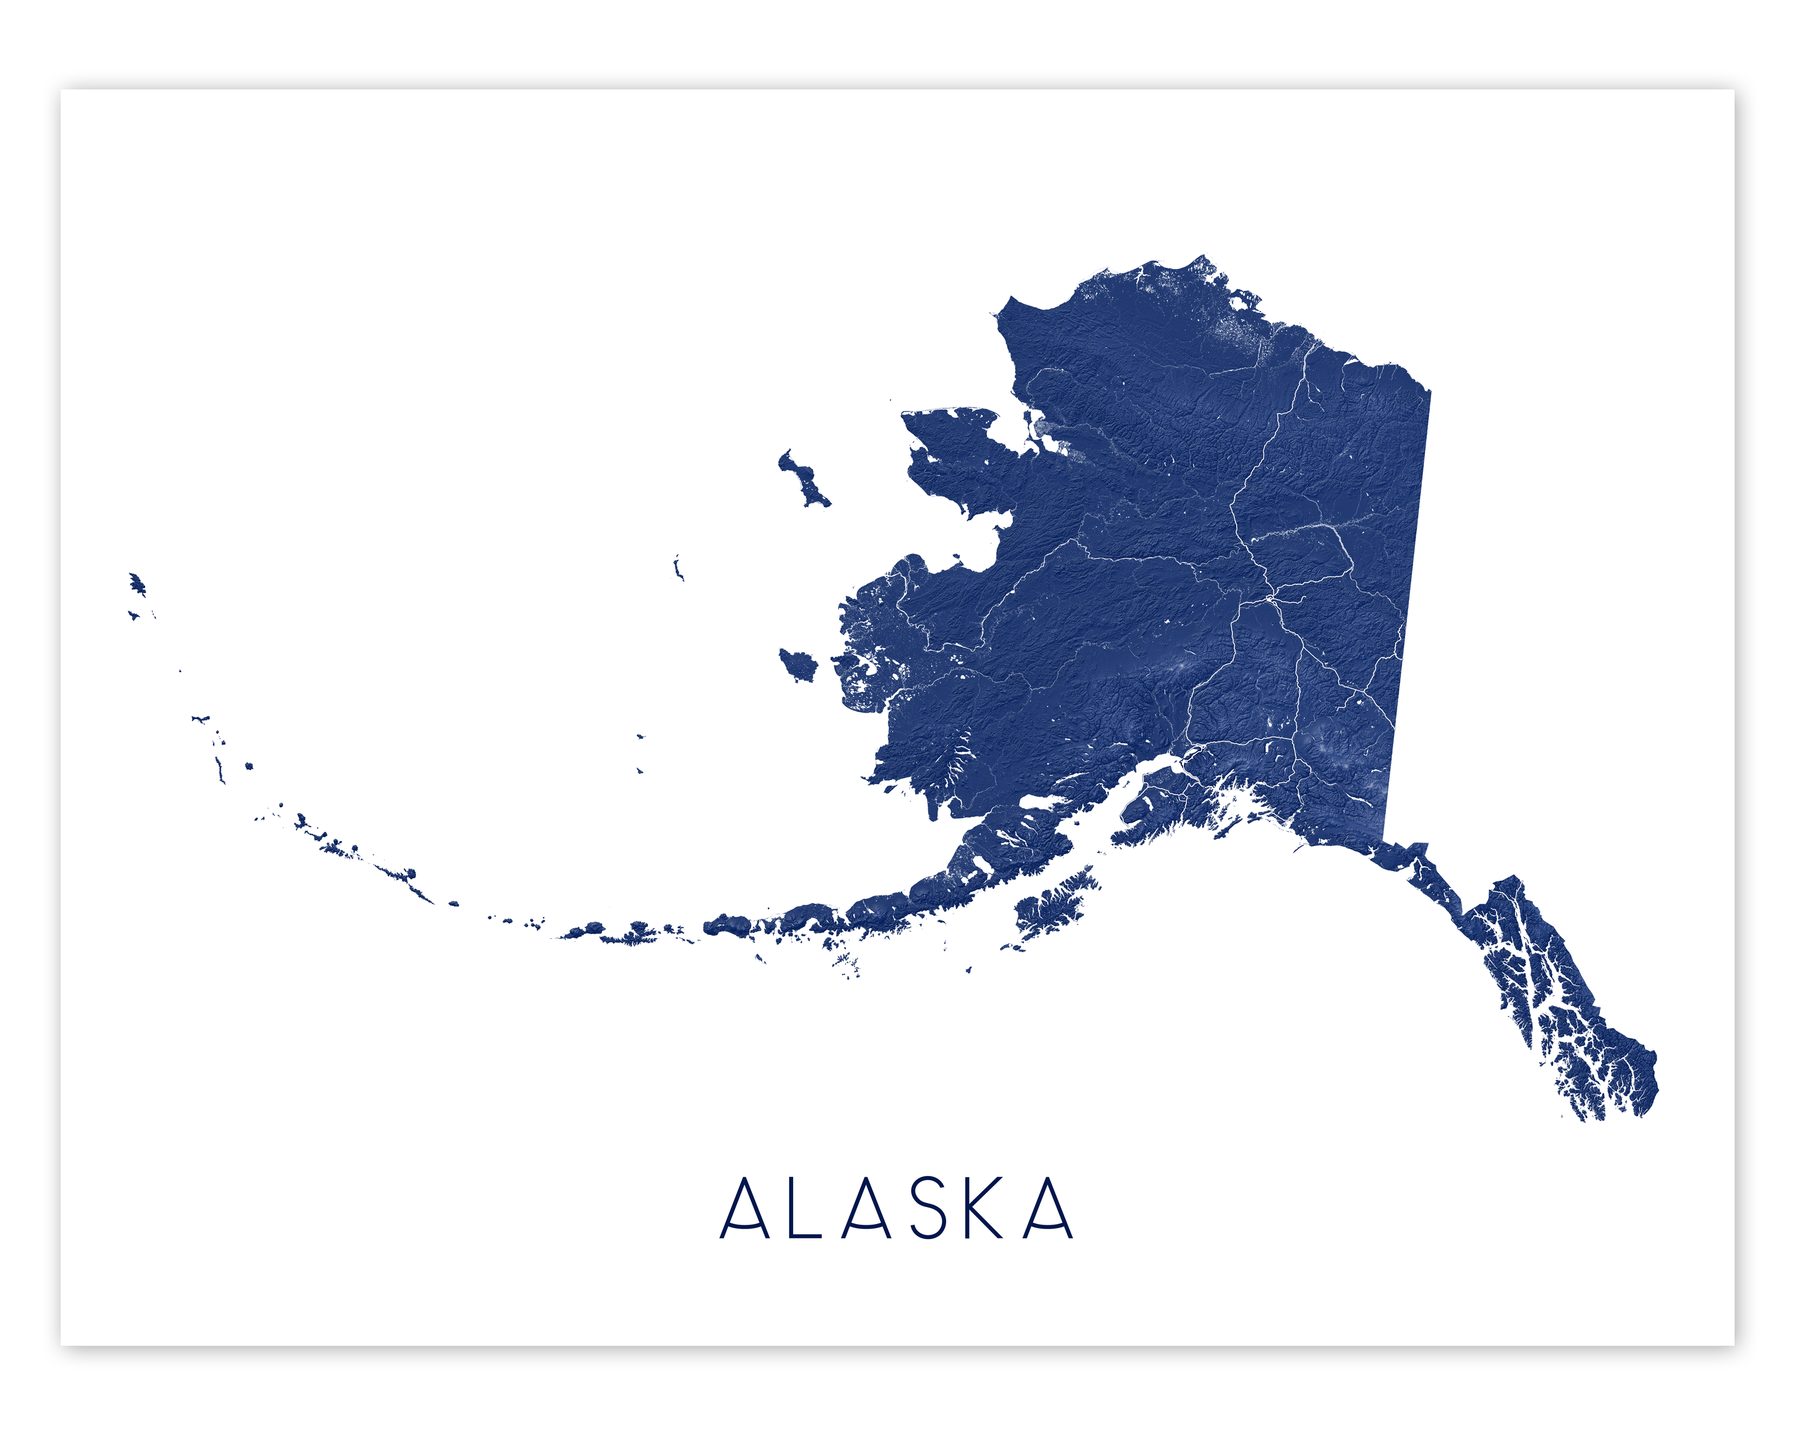 Alaska state map print in Midnight by Maps As Art.